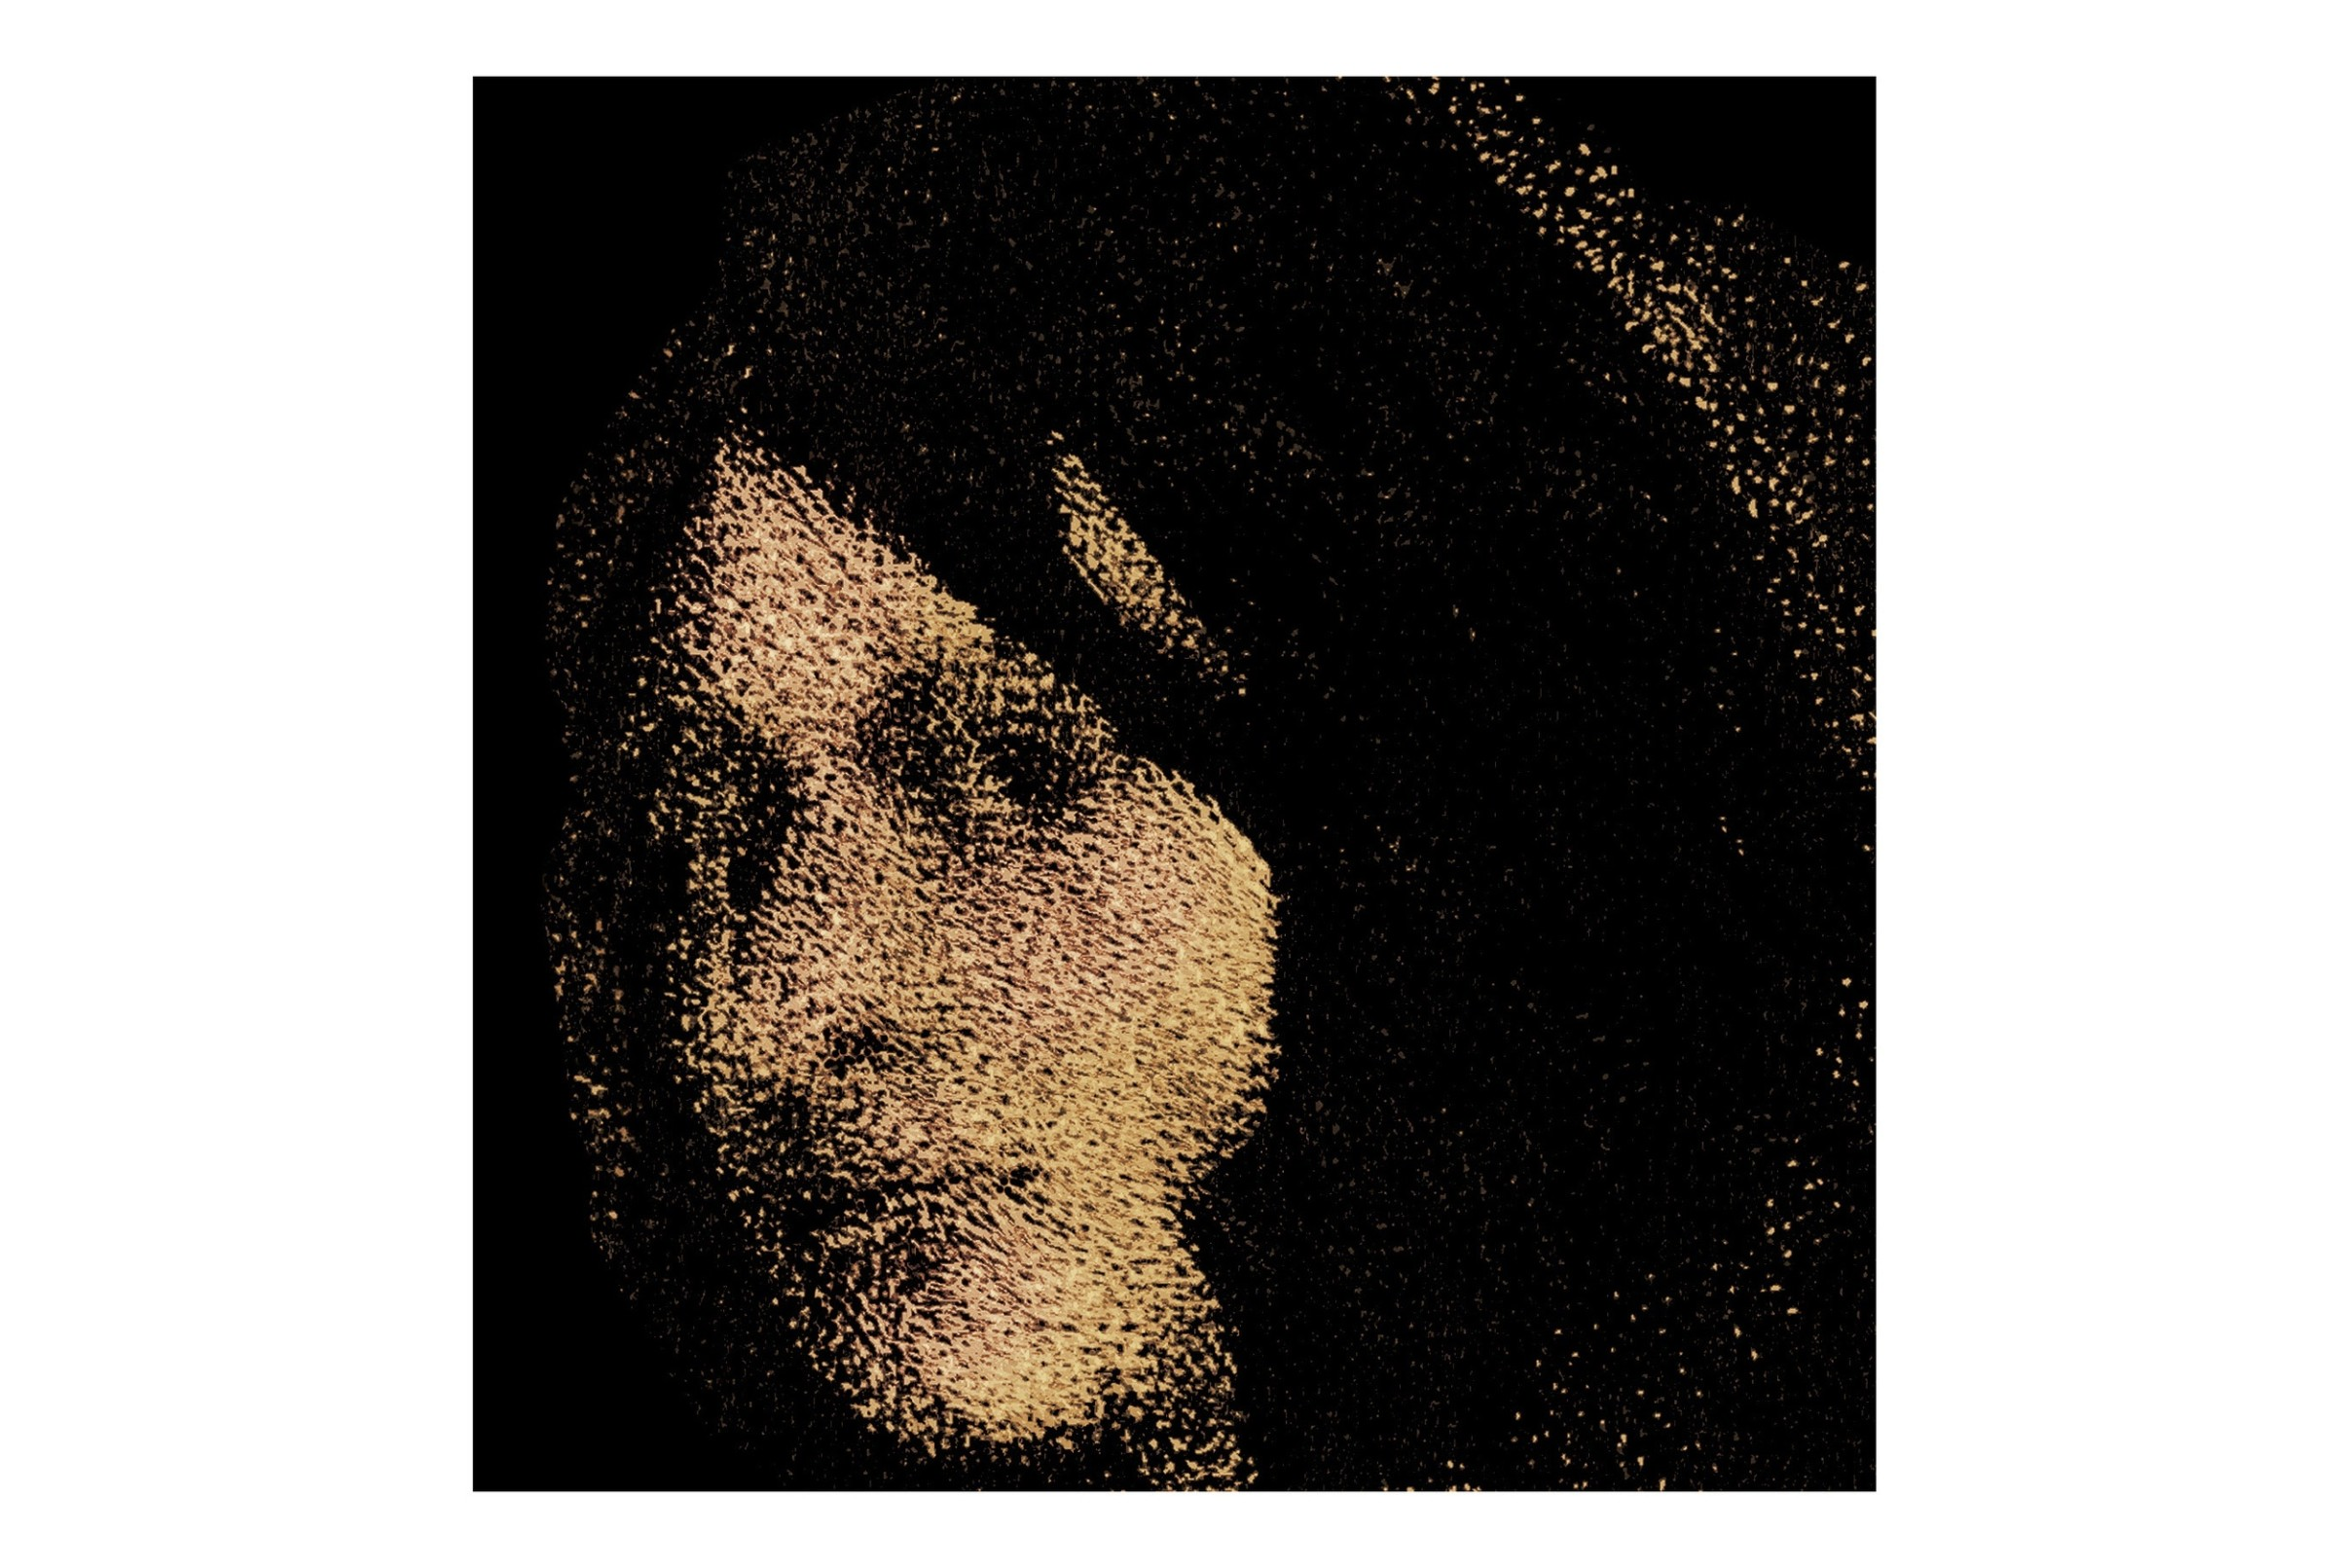 """<span class=""""link fancybox-details-link""""><a href=""""/exhibitions/17/works/image_standalone706/"""">View Detail Page</a></span><p><strong>Gwilym Hughes</strong></p><p>Twilight</p><p>relief etching & digital print, ed of 12</p><p>18 x 18cm</p><p>£100 framed</p><p>£85 unframed</p>"""